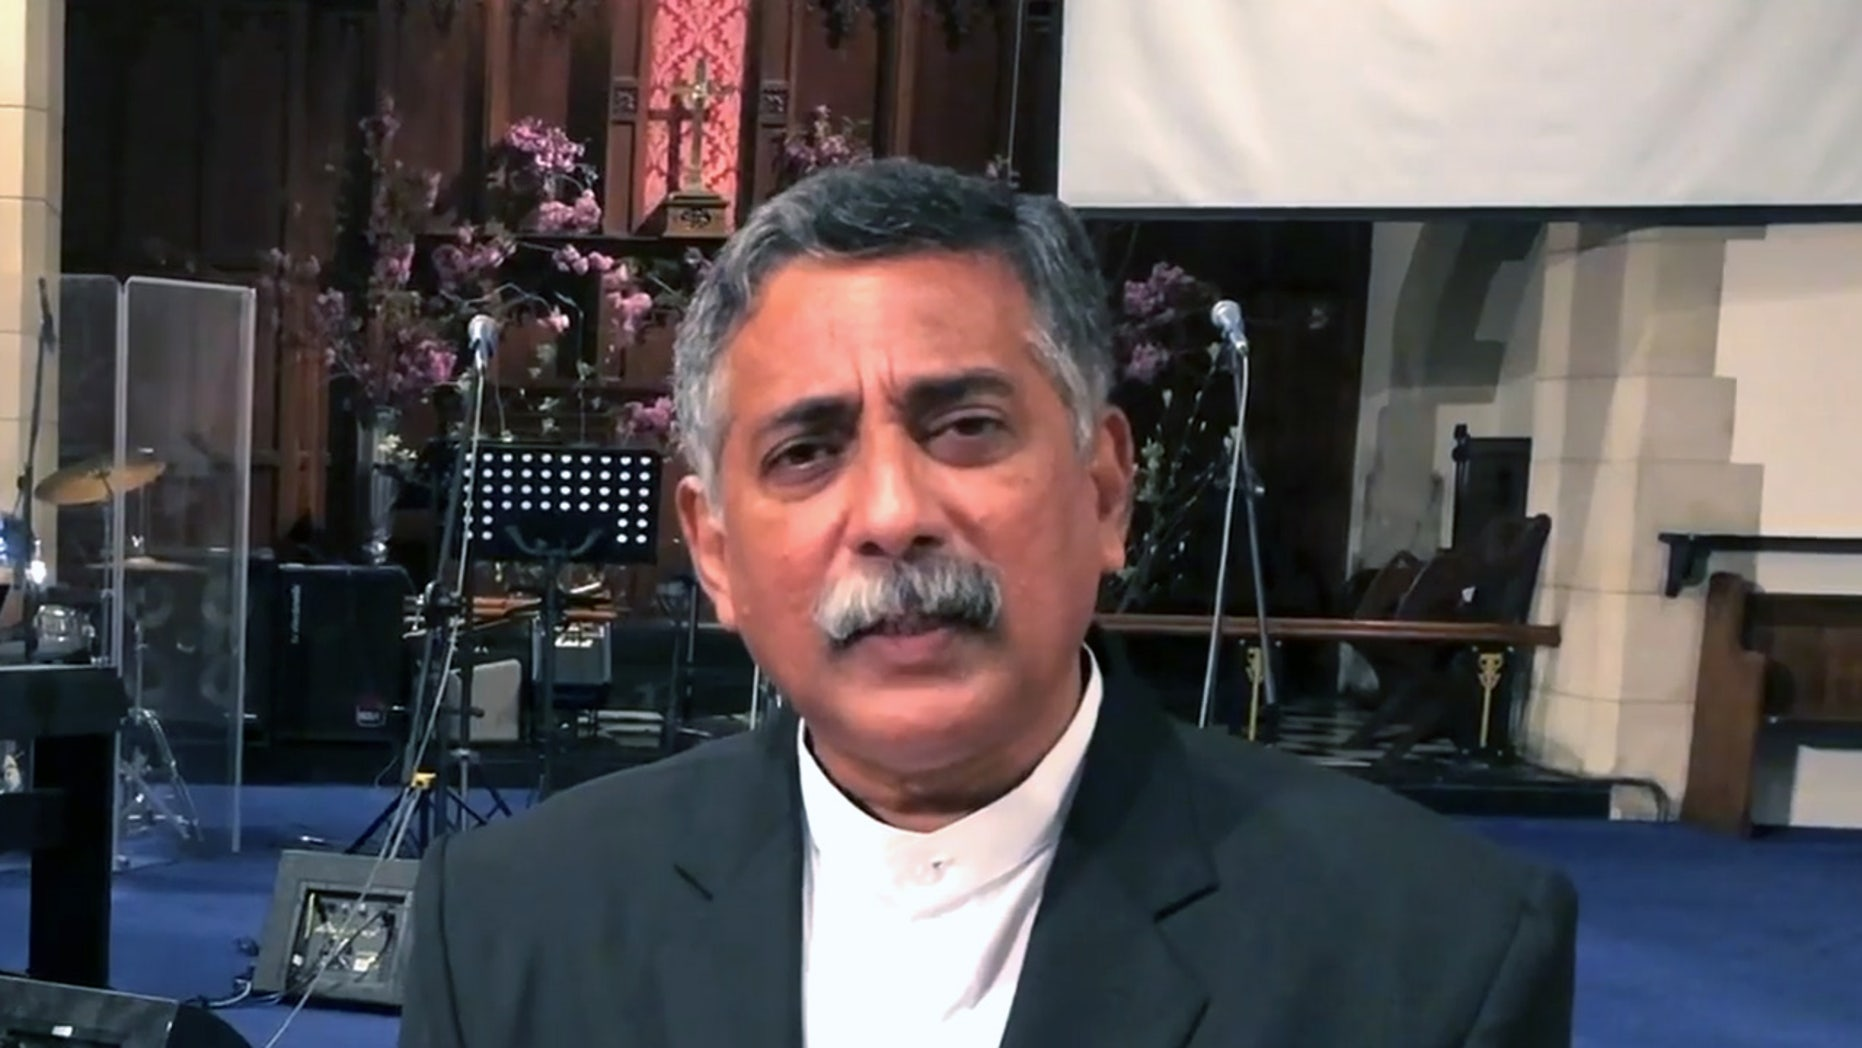 Rev. Roshan Mahesan, senior pastor of Zion Church in Batticaloa, Sri Lanka, said he and his church forgive the suicide bombers and those who plotted with them because of the love of Jesus Christ.